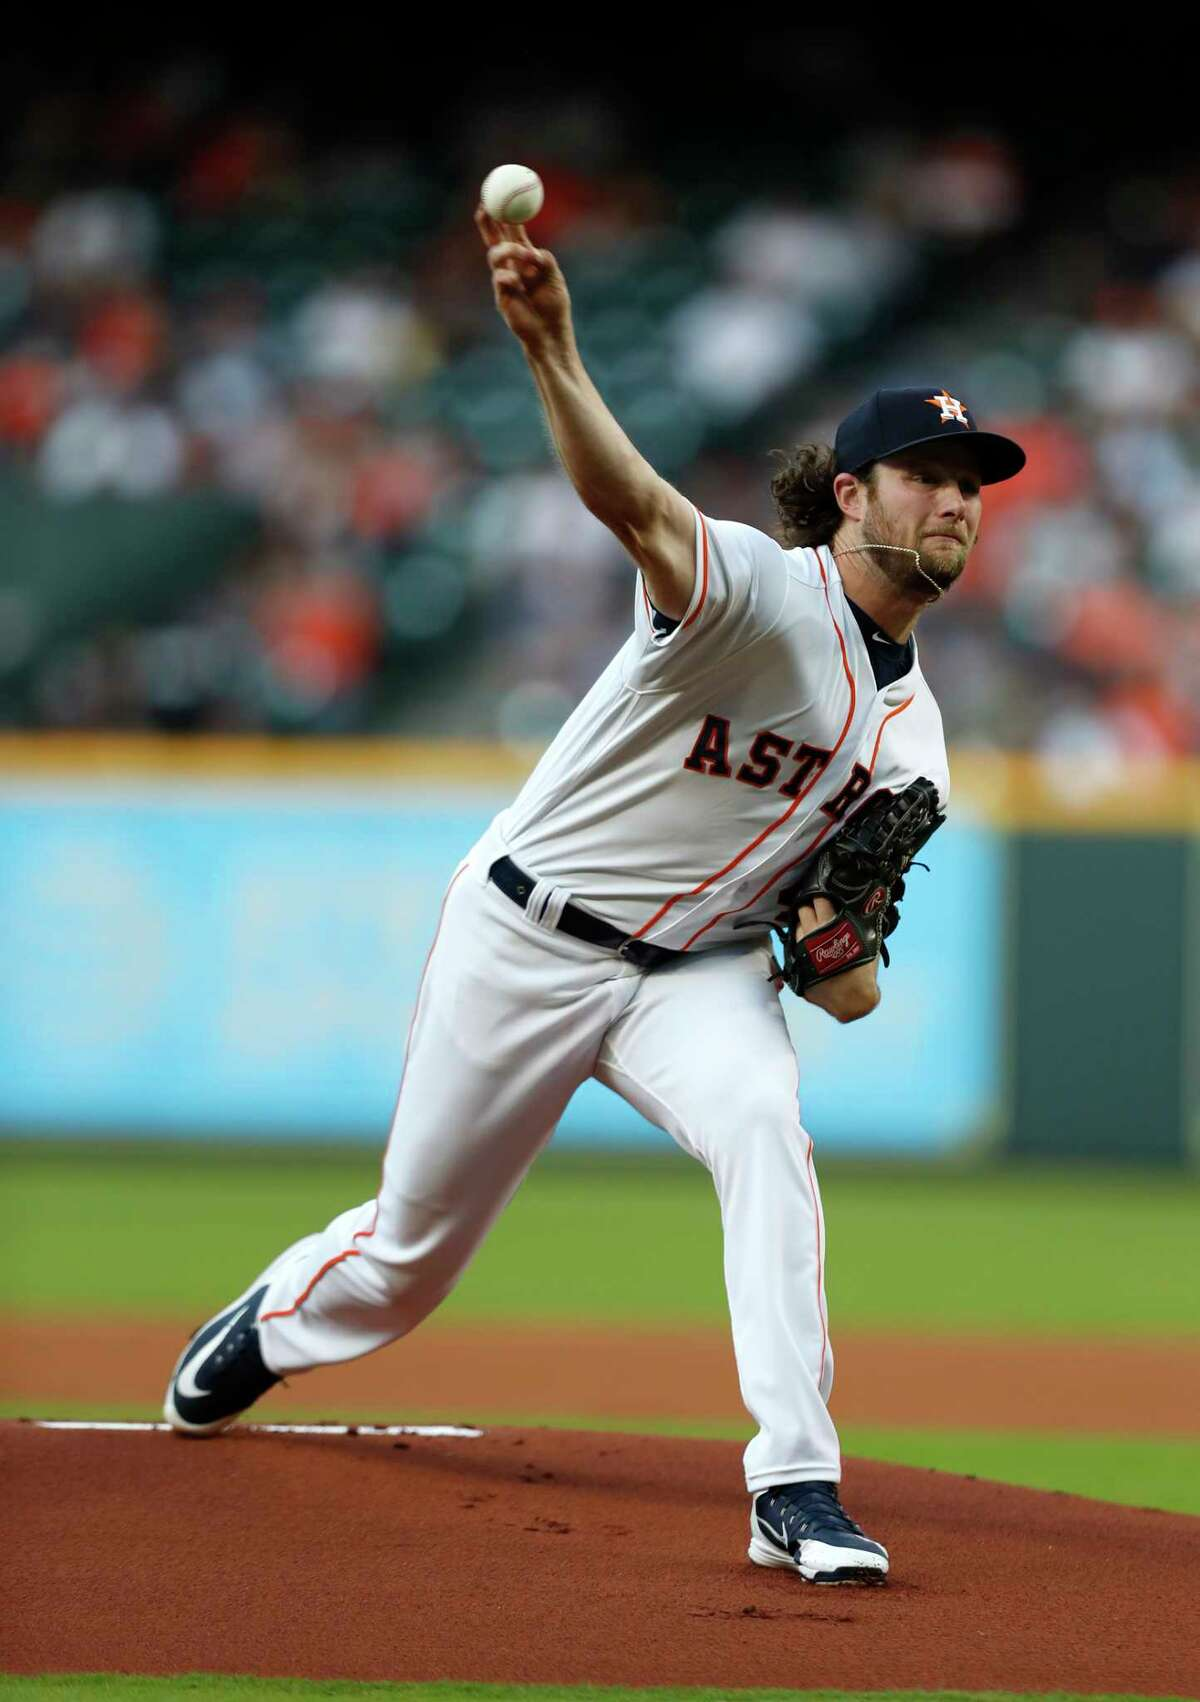 Houston Astros starting pitcher Gerrit Cole (45) pitches during the first inning of an MLB game at Minute Maid Park, Monday, April 23, 2018, in Houston.